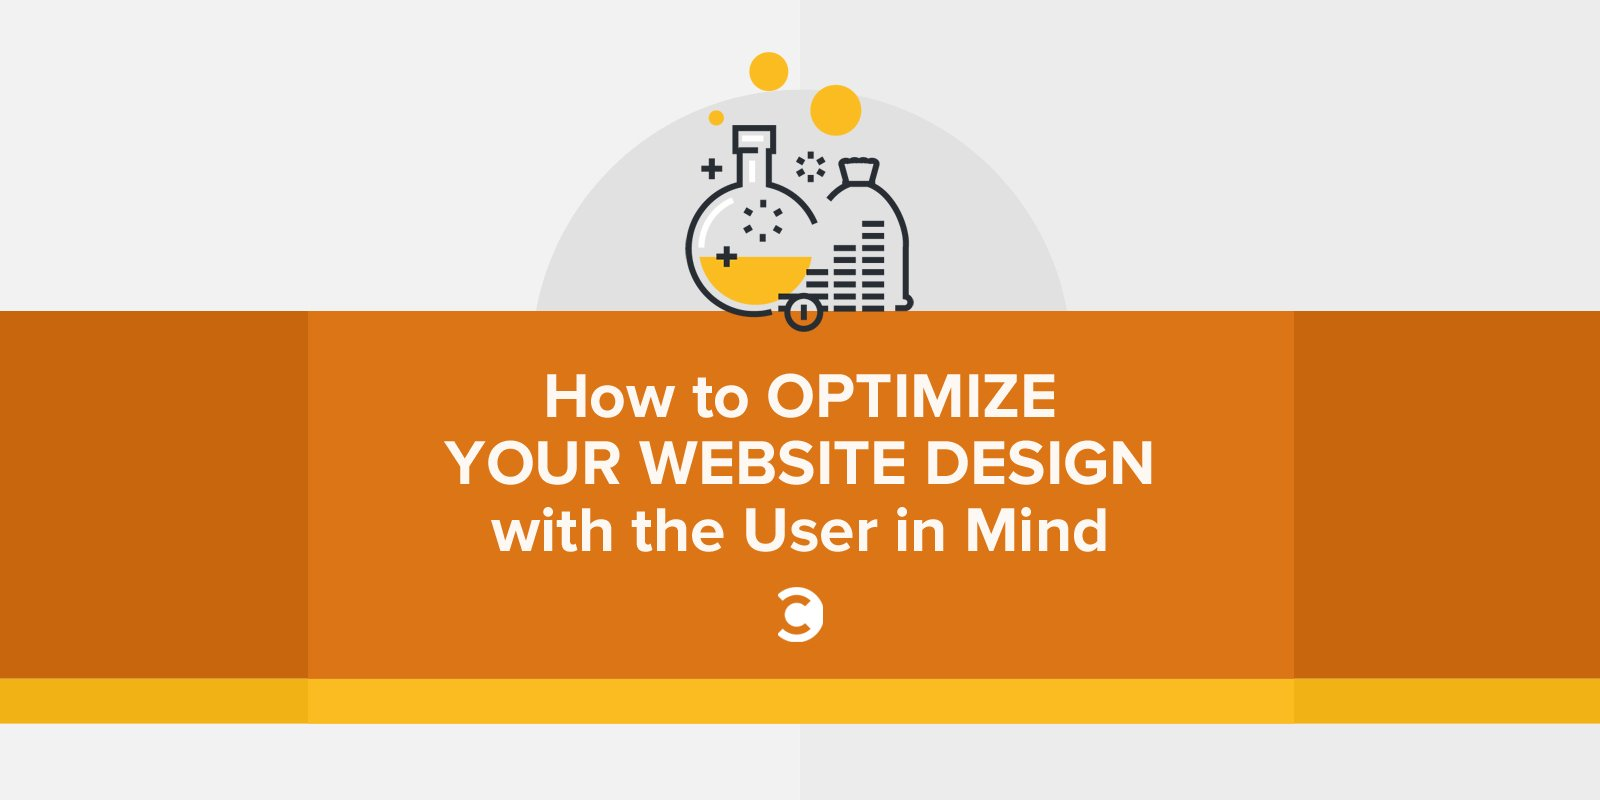 How to Optimize Your Website Design with the User in Mind